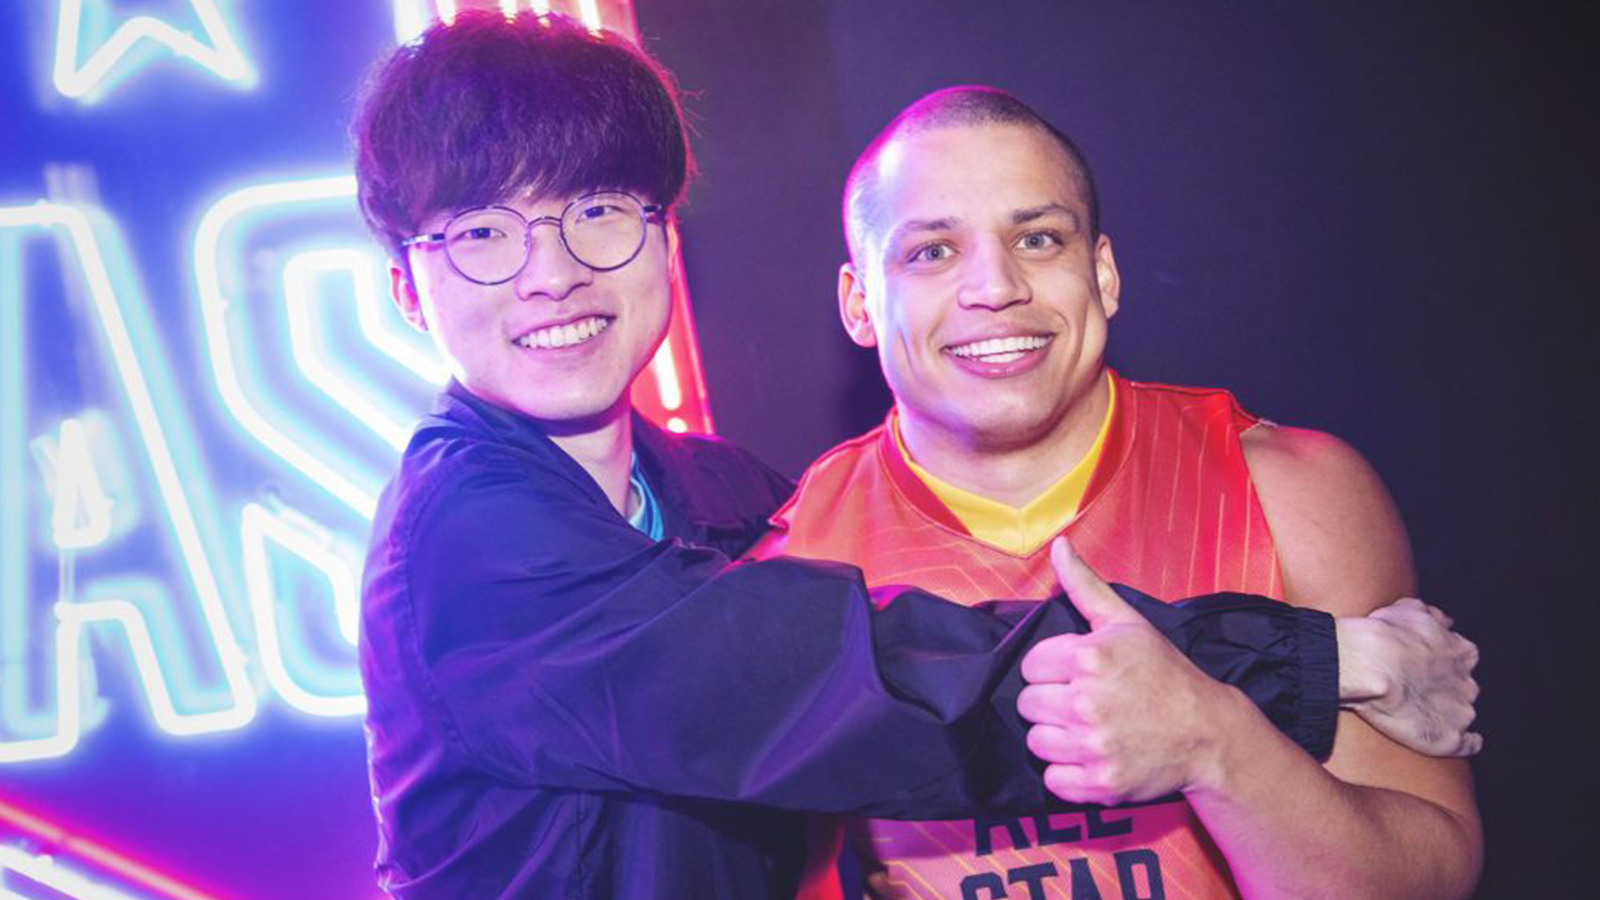 Faker hugging Tyler1 at League of Legends All-Stars 2019